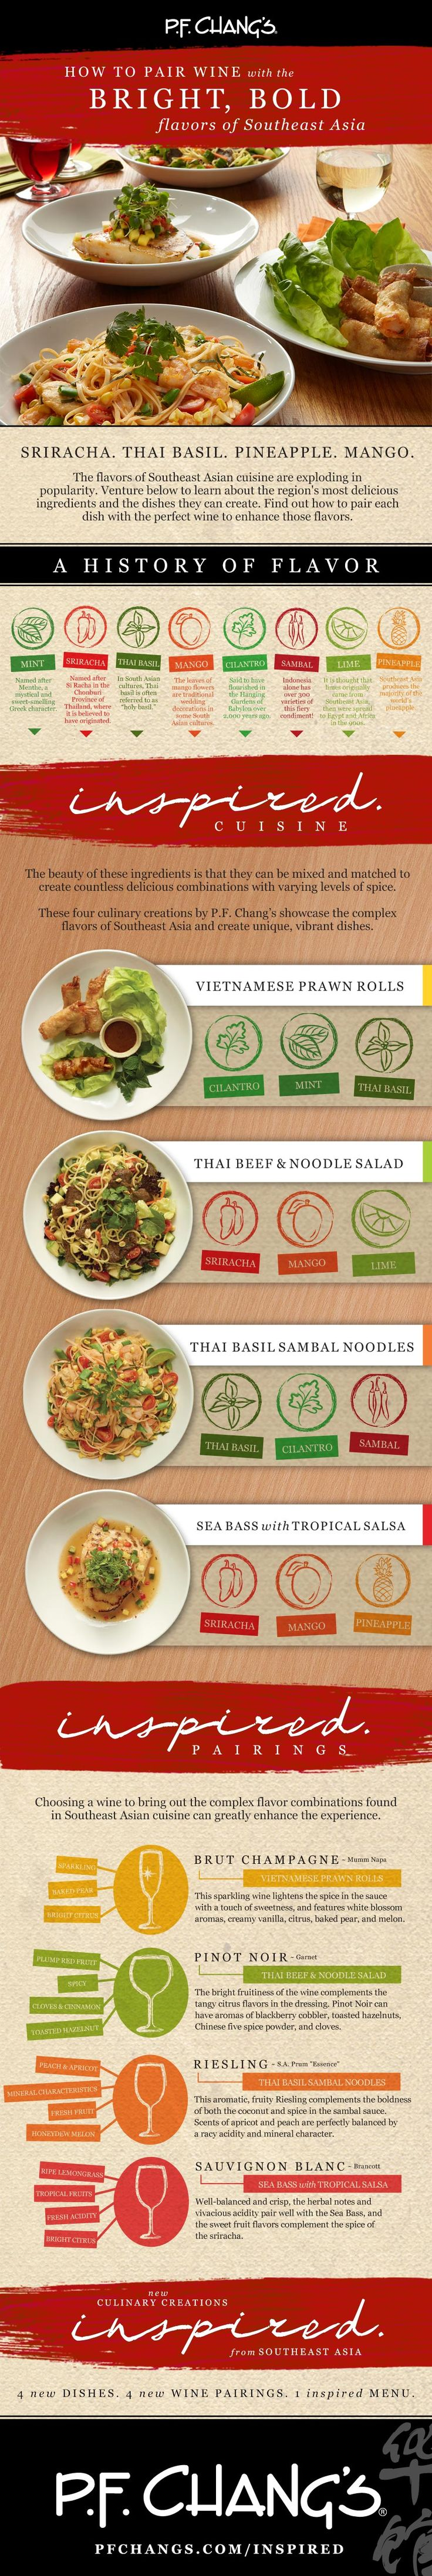 Pairing #wines with south east #Asian #foods - Discover more in this #infographic - http://www.finedininglovers.com/blog/food-drinks/pairing-wine-with-asian-foods/